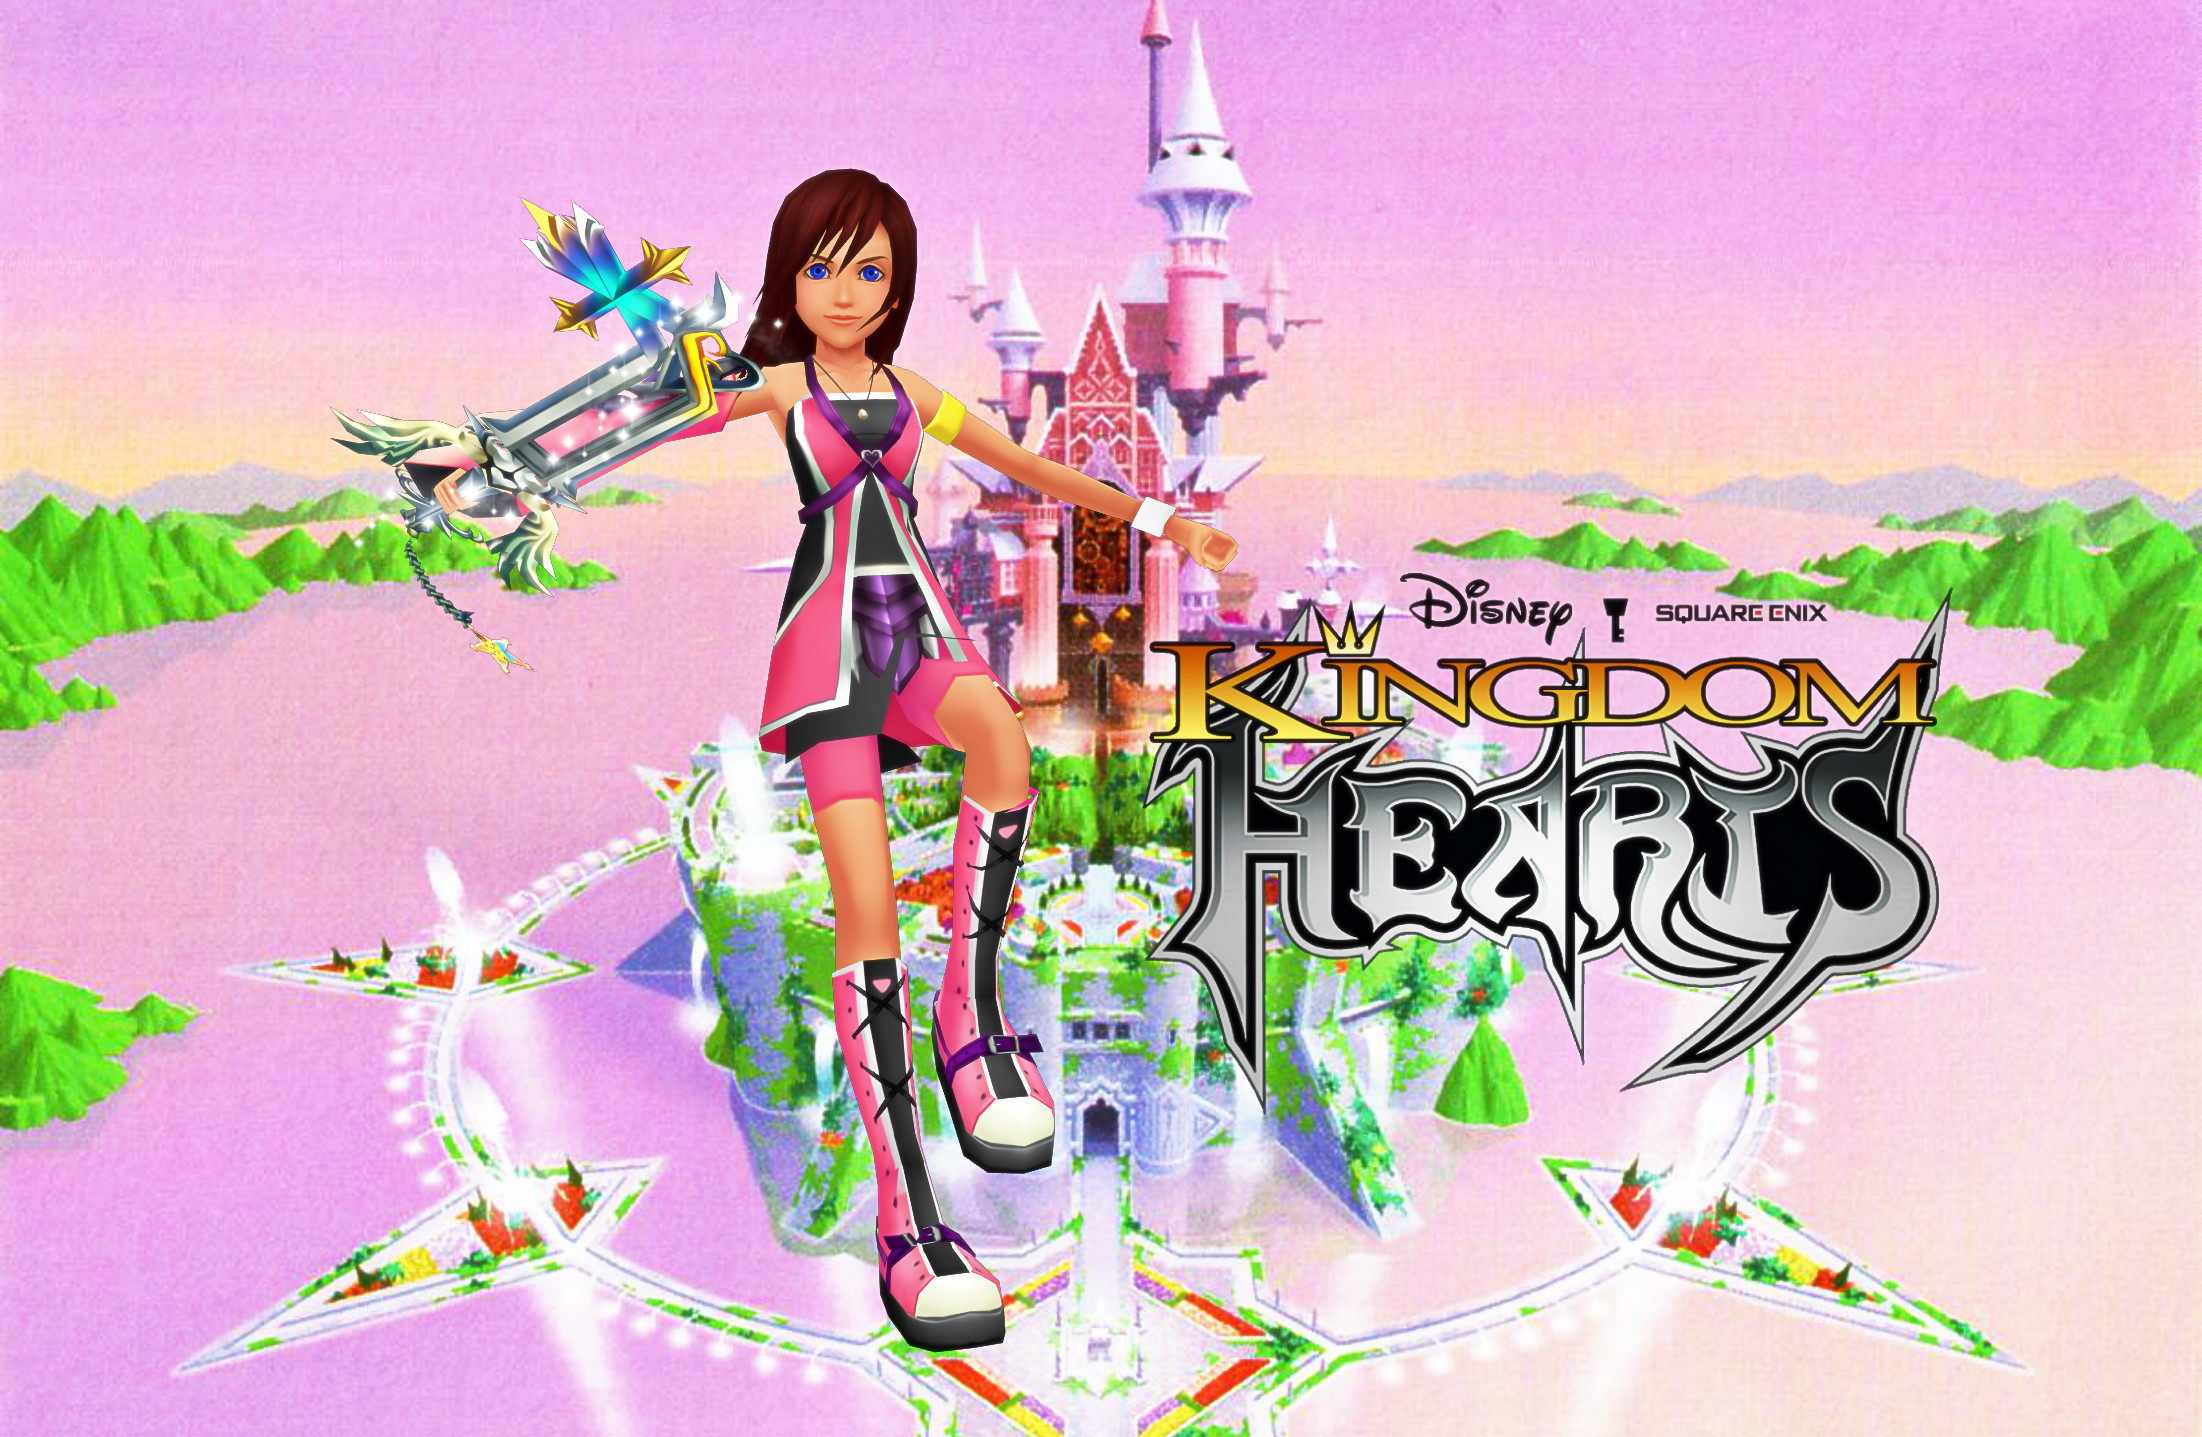 Res: 2202x1437, ... KH ReImagined Promo Wallpaper - Kairi by todsen19